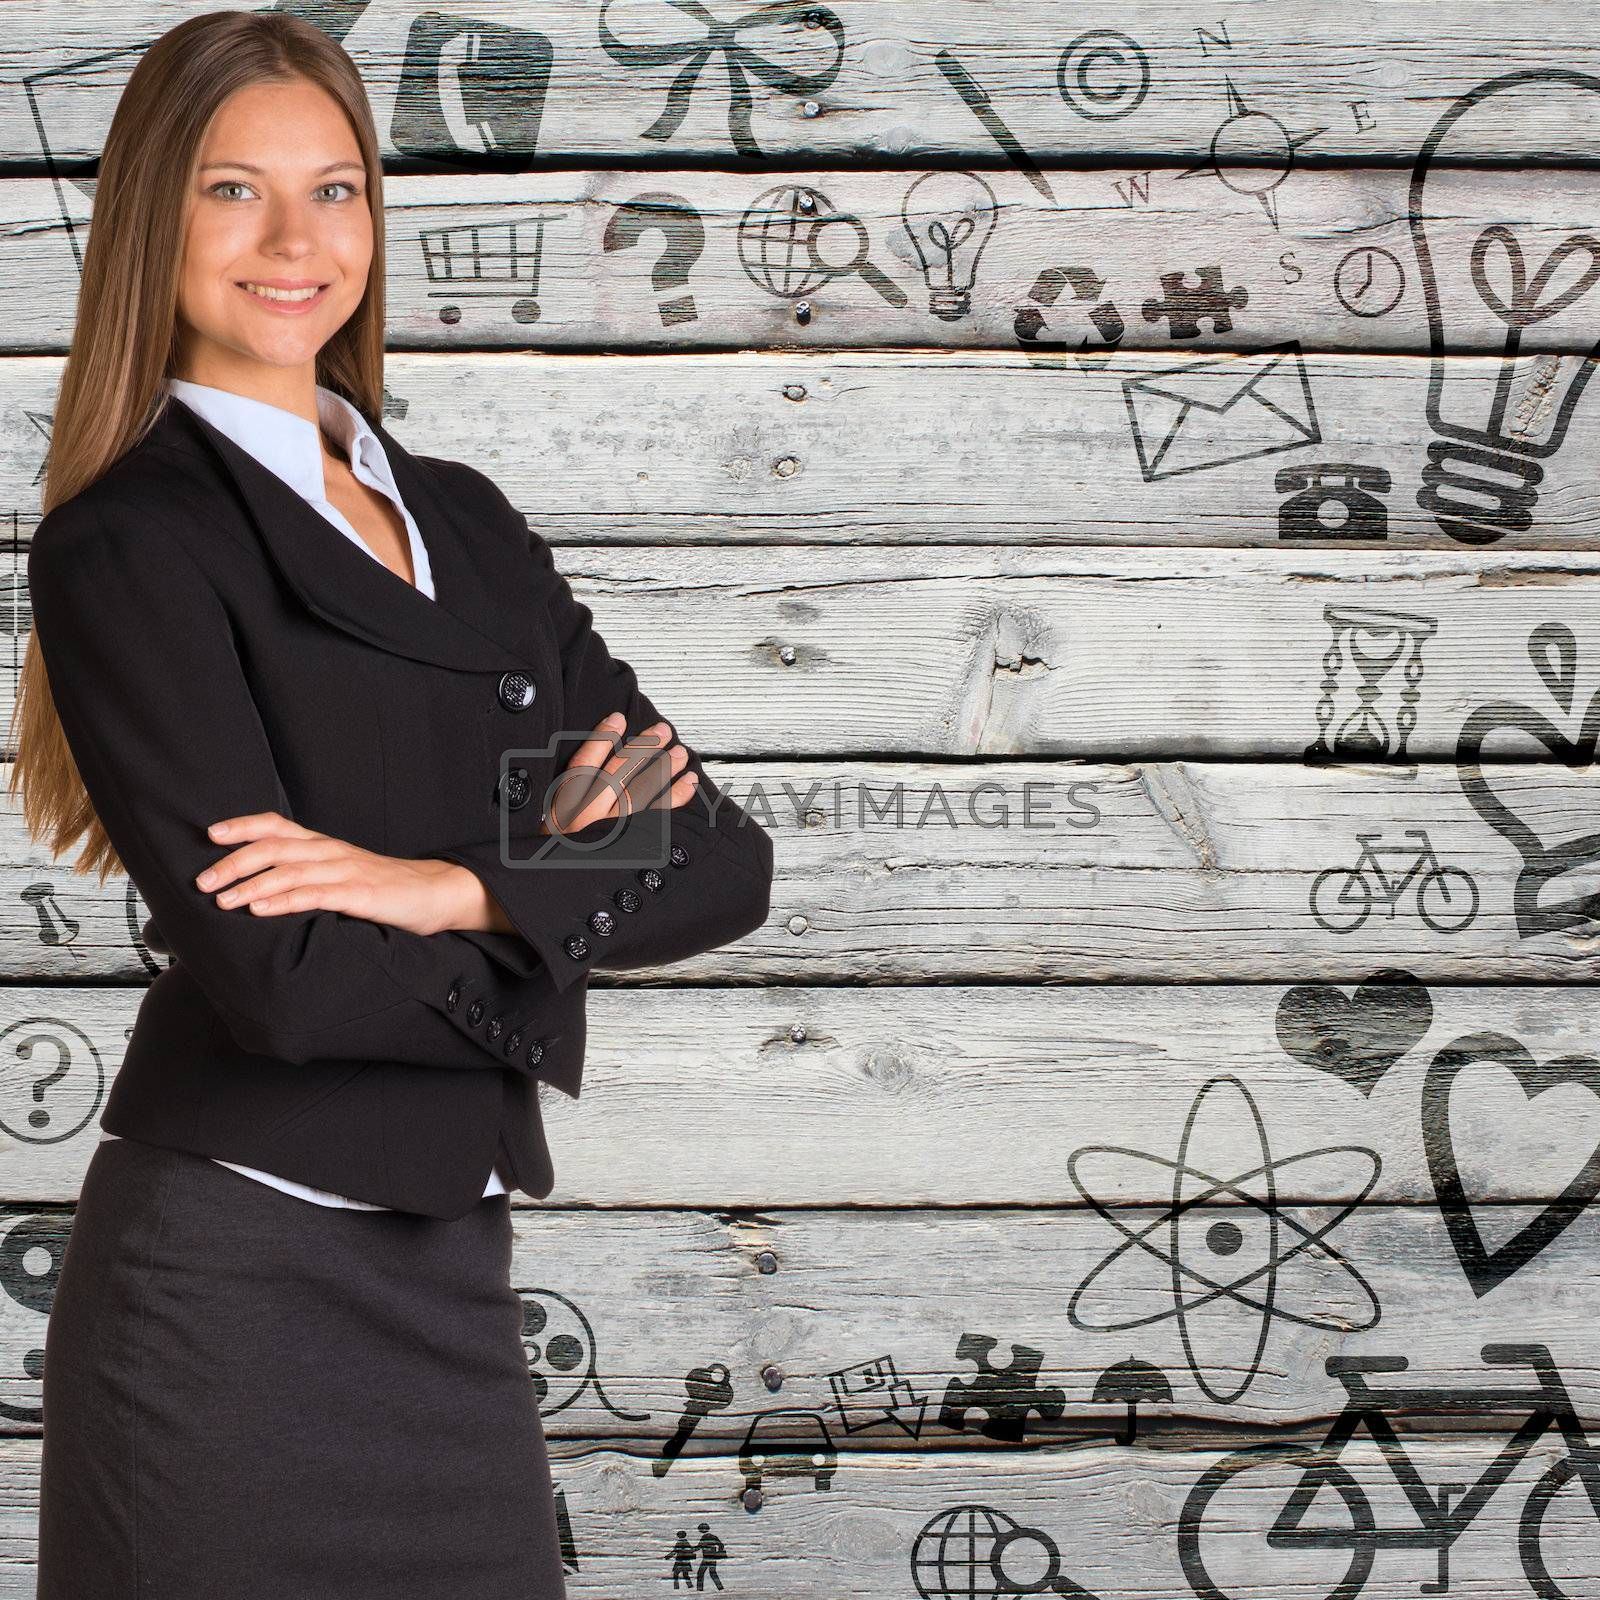 Businesswoman in a suit with background of various social icons on old wooden surface. Stylised frame